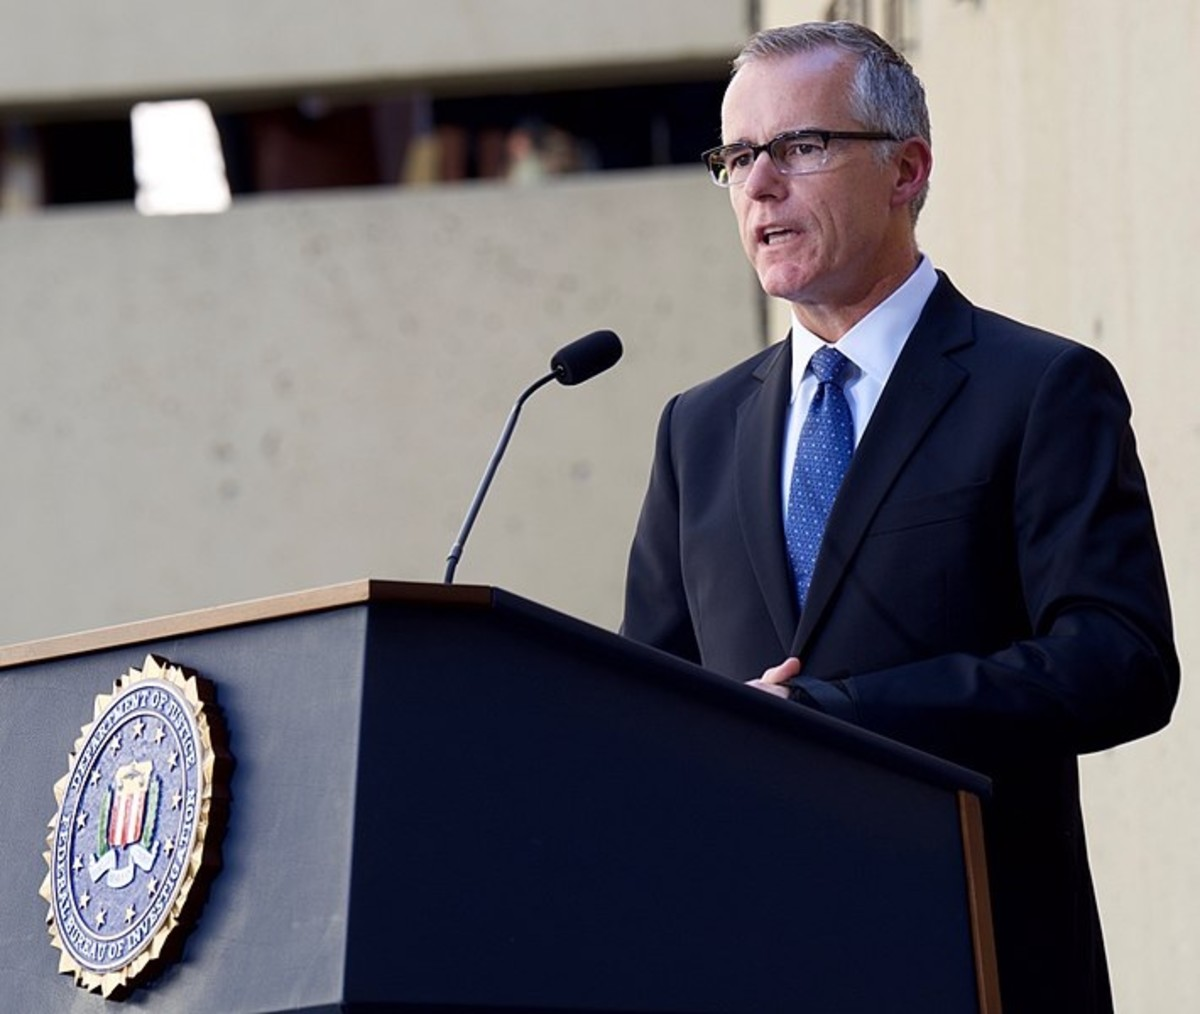 Who Is Andrew McCabe? Is a Trump Purge Underway?